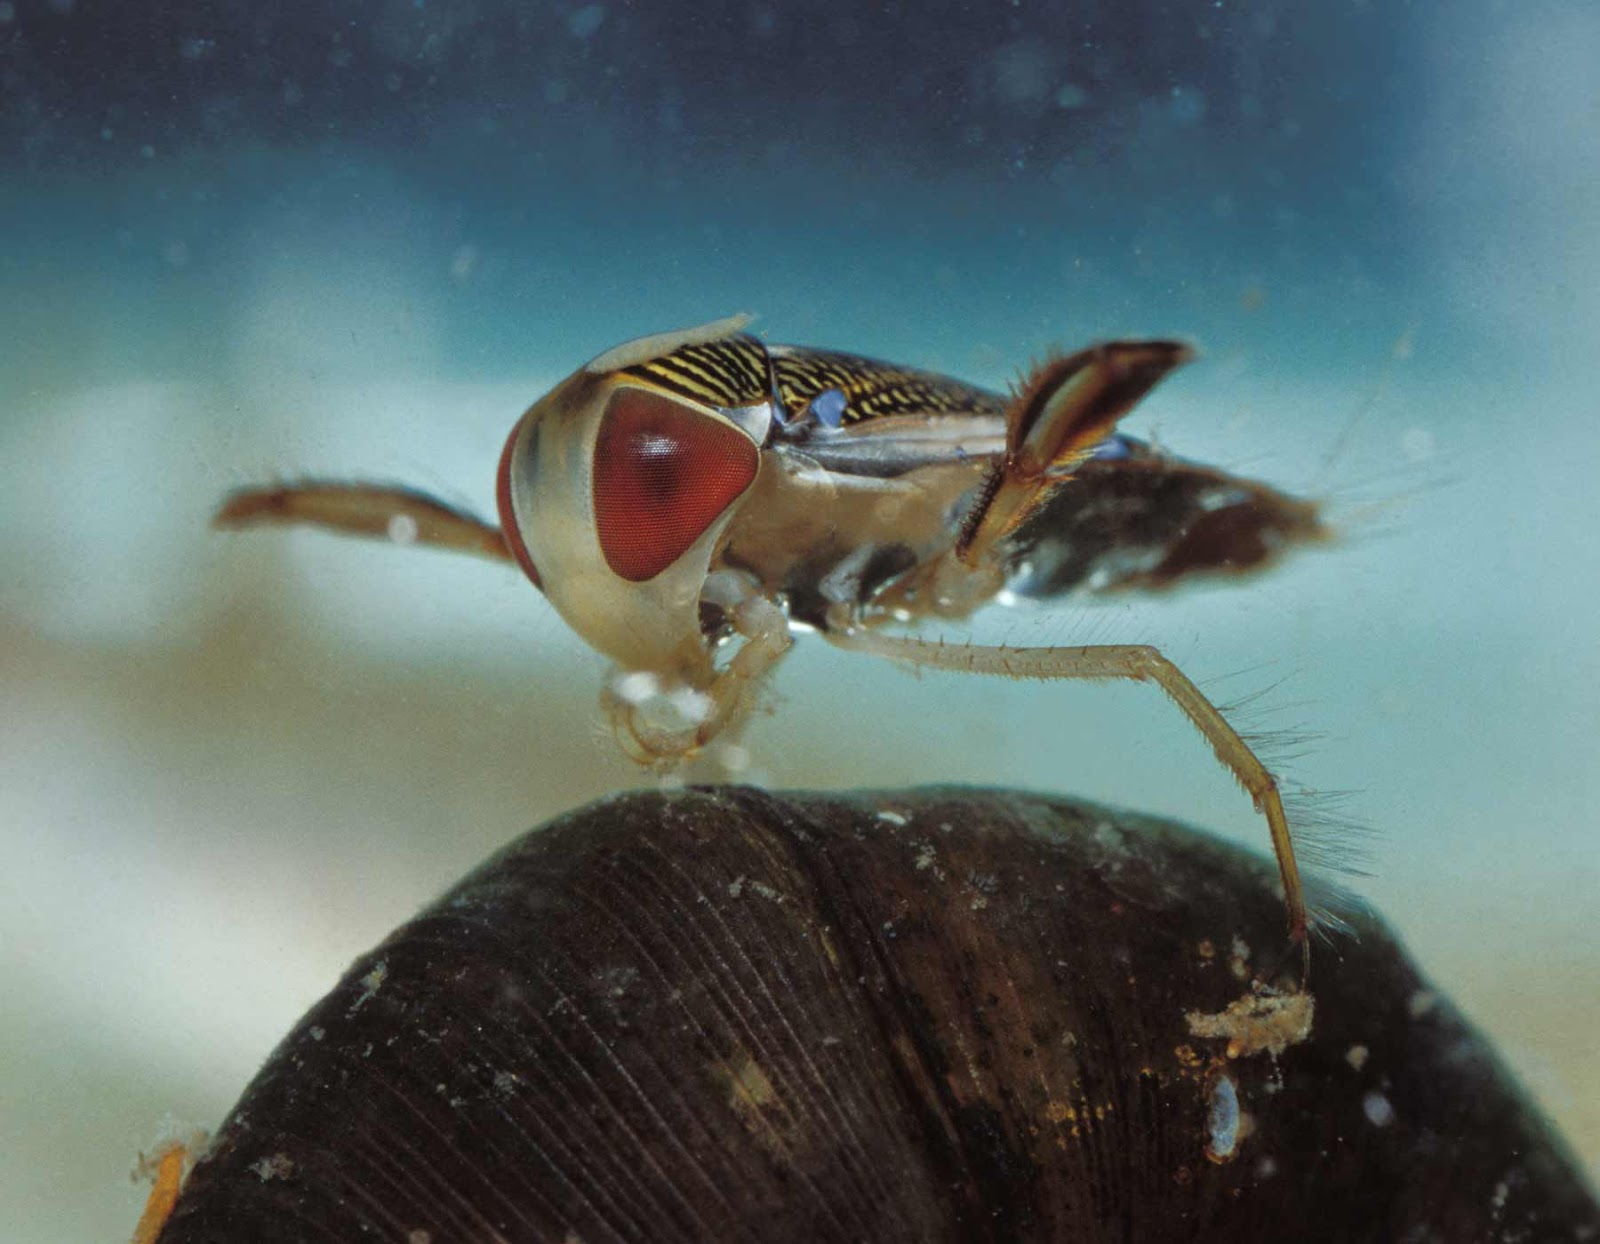 a water boatman bug underwater eating algae